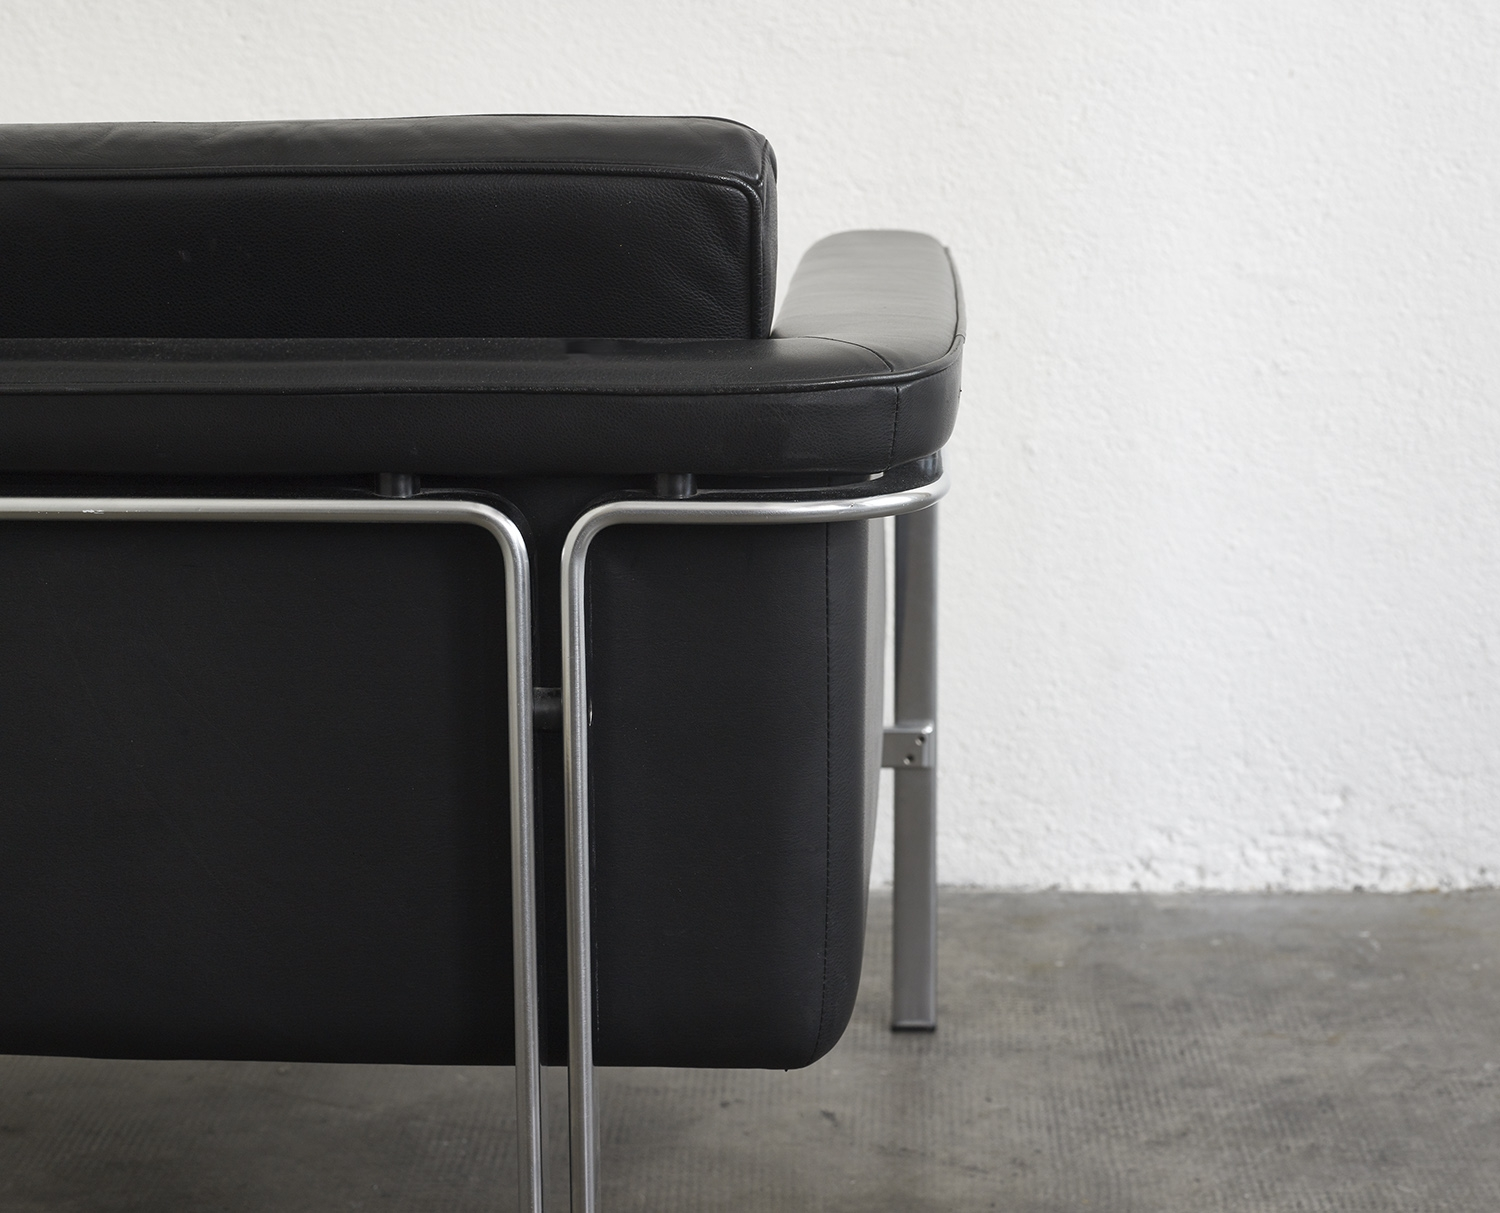 leather-easy-chair-by-horst-bruning-1960-image-02